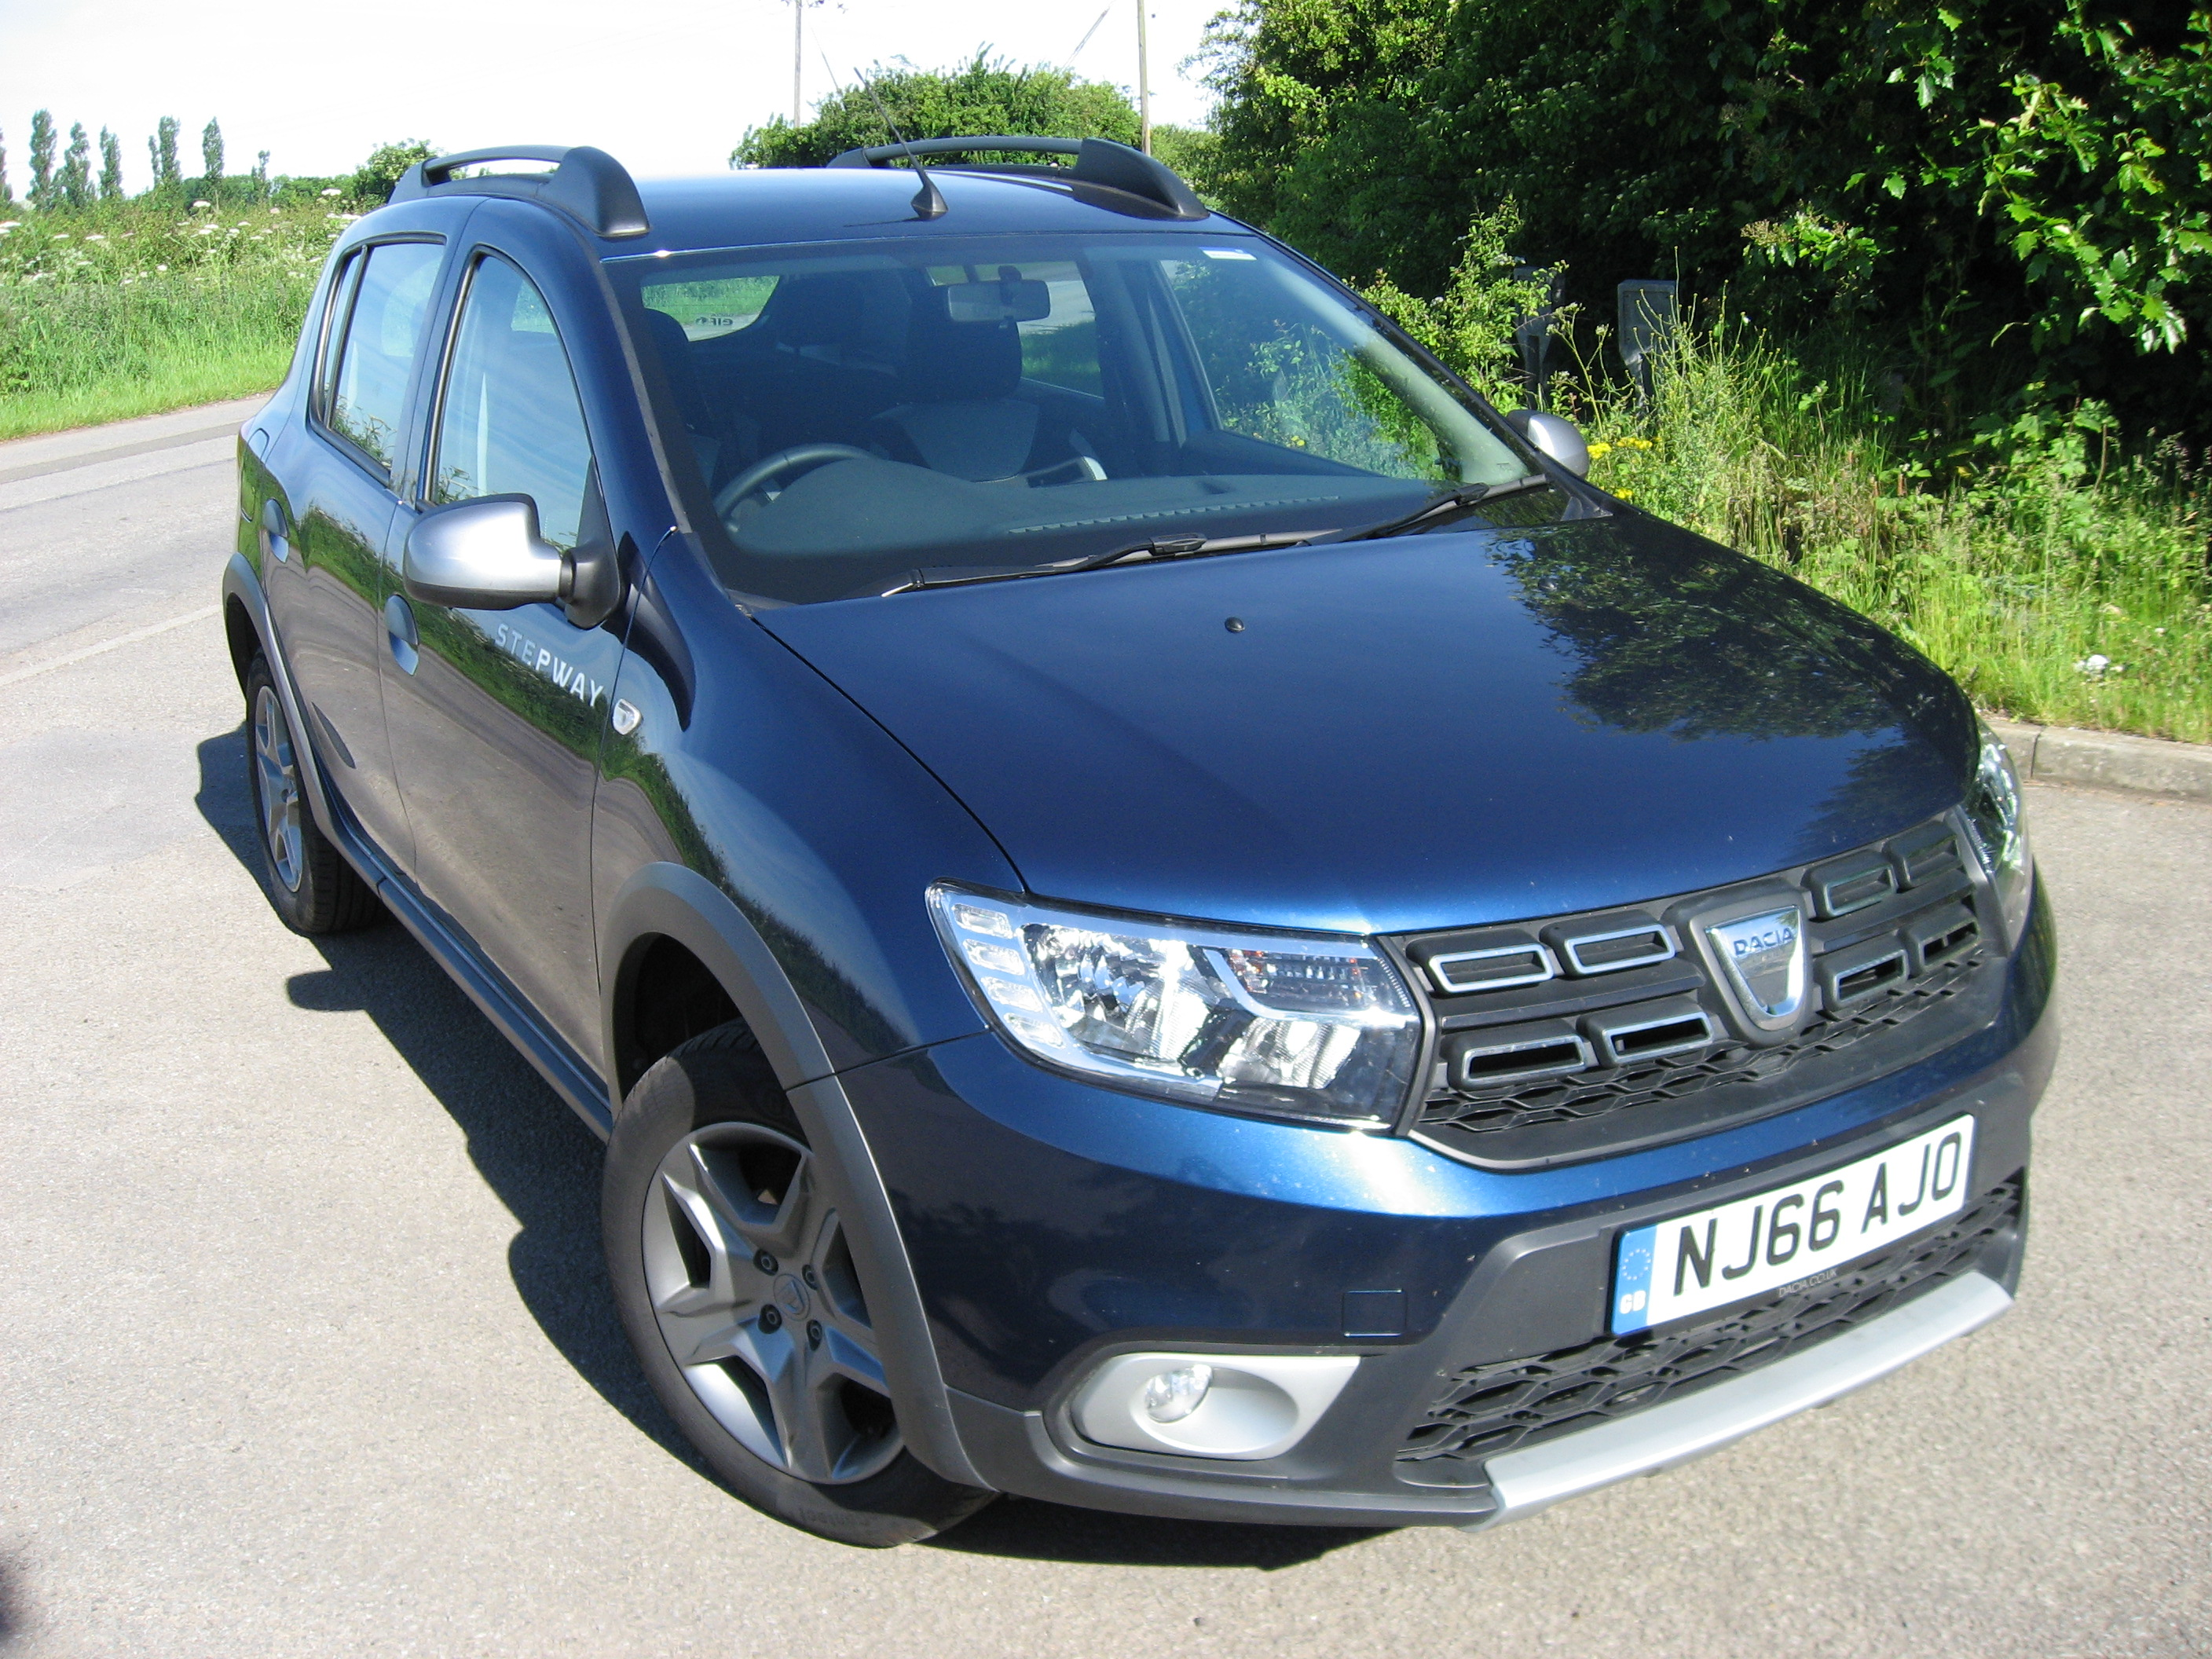 dacia sandero stepway ambiance tce 90 road test report and review. Black Bedroom Furniture Sets. Home Design Ideas